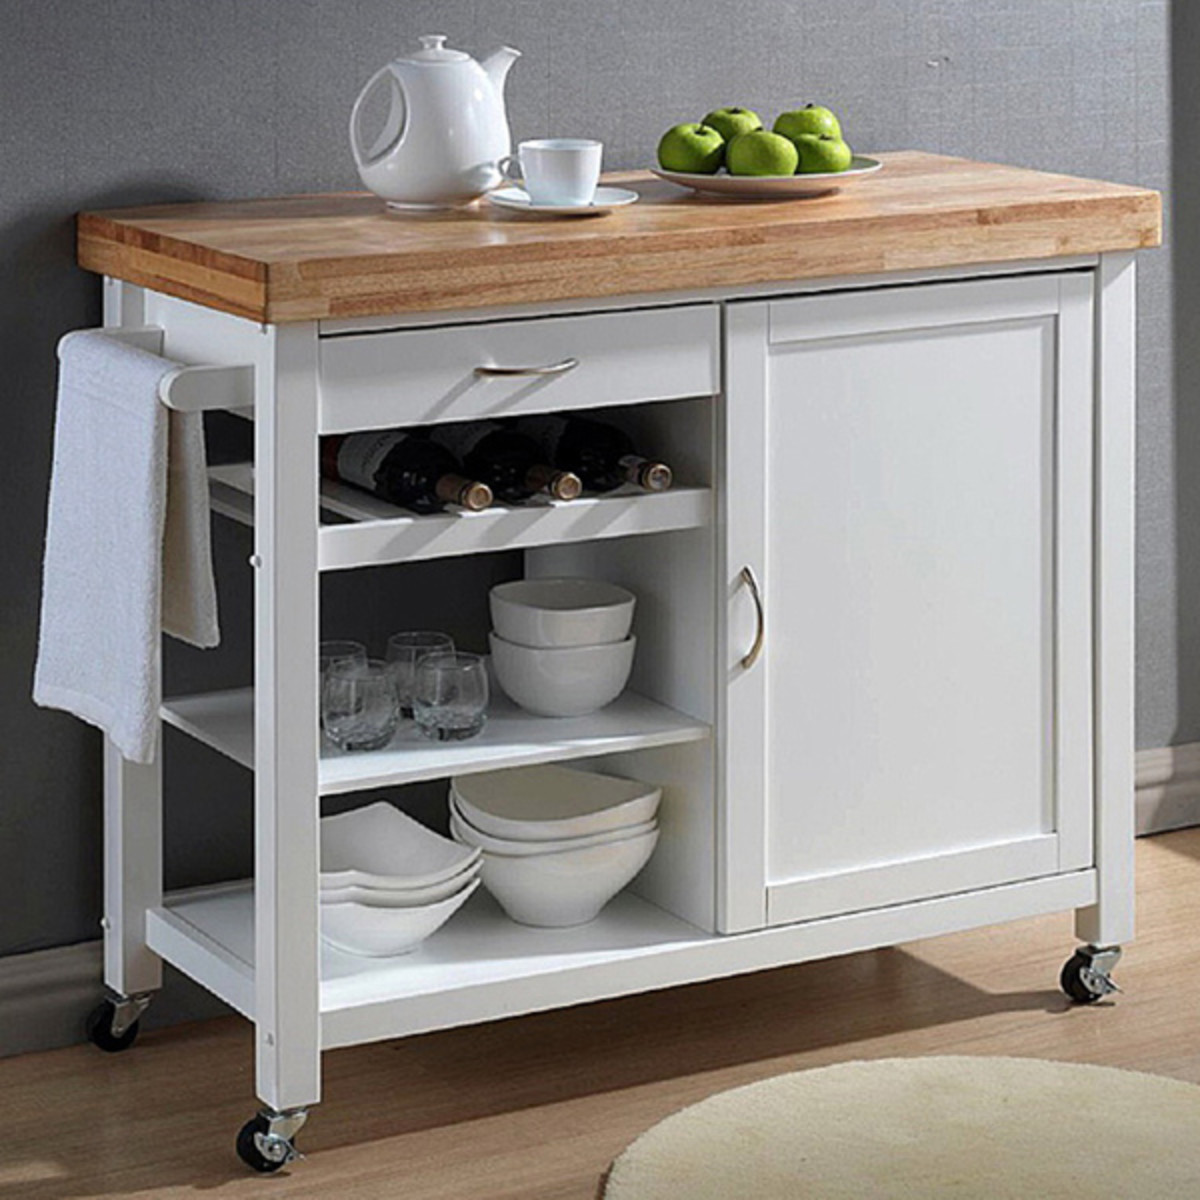 A kitchen cart provides the prep and storage space that you need and can be moved out of the way for entertaining.